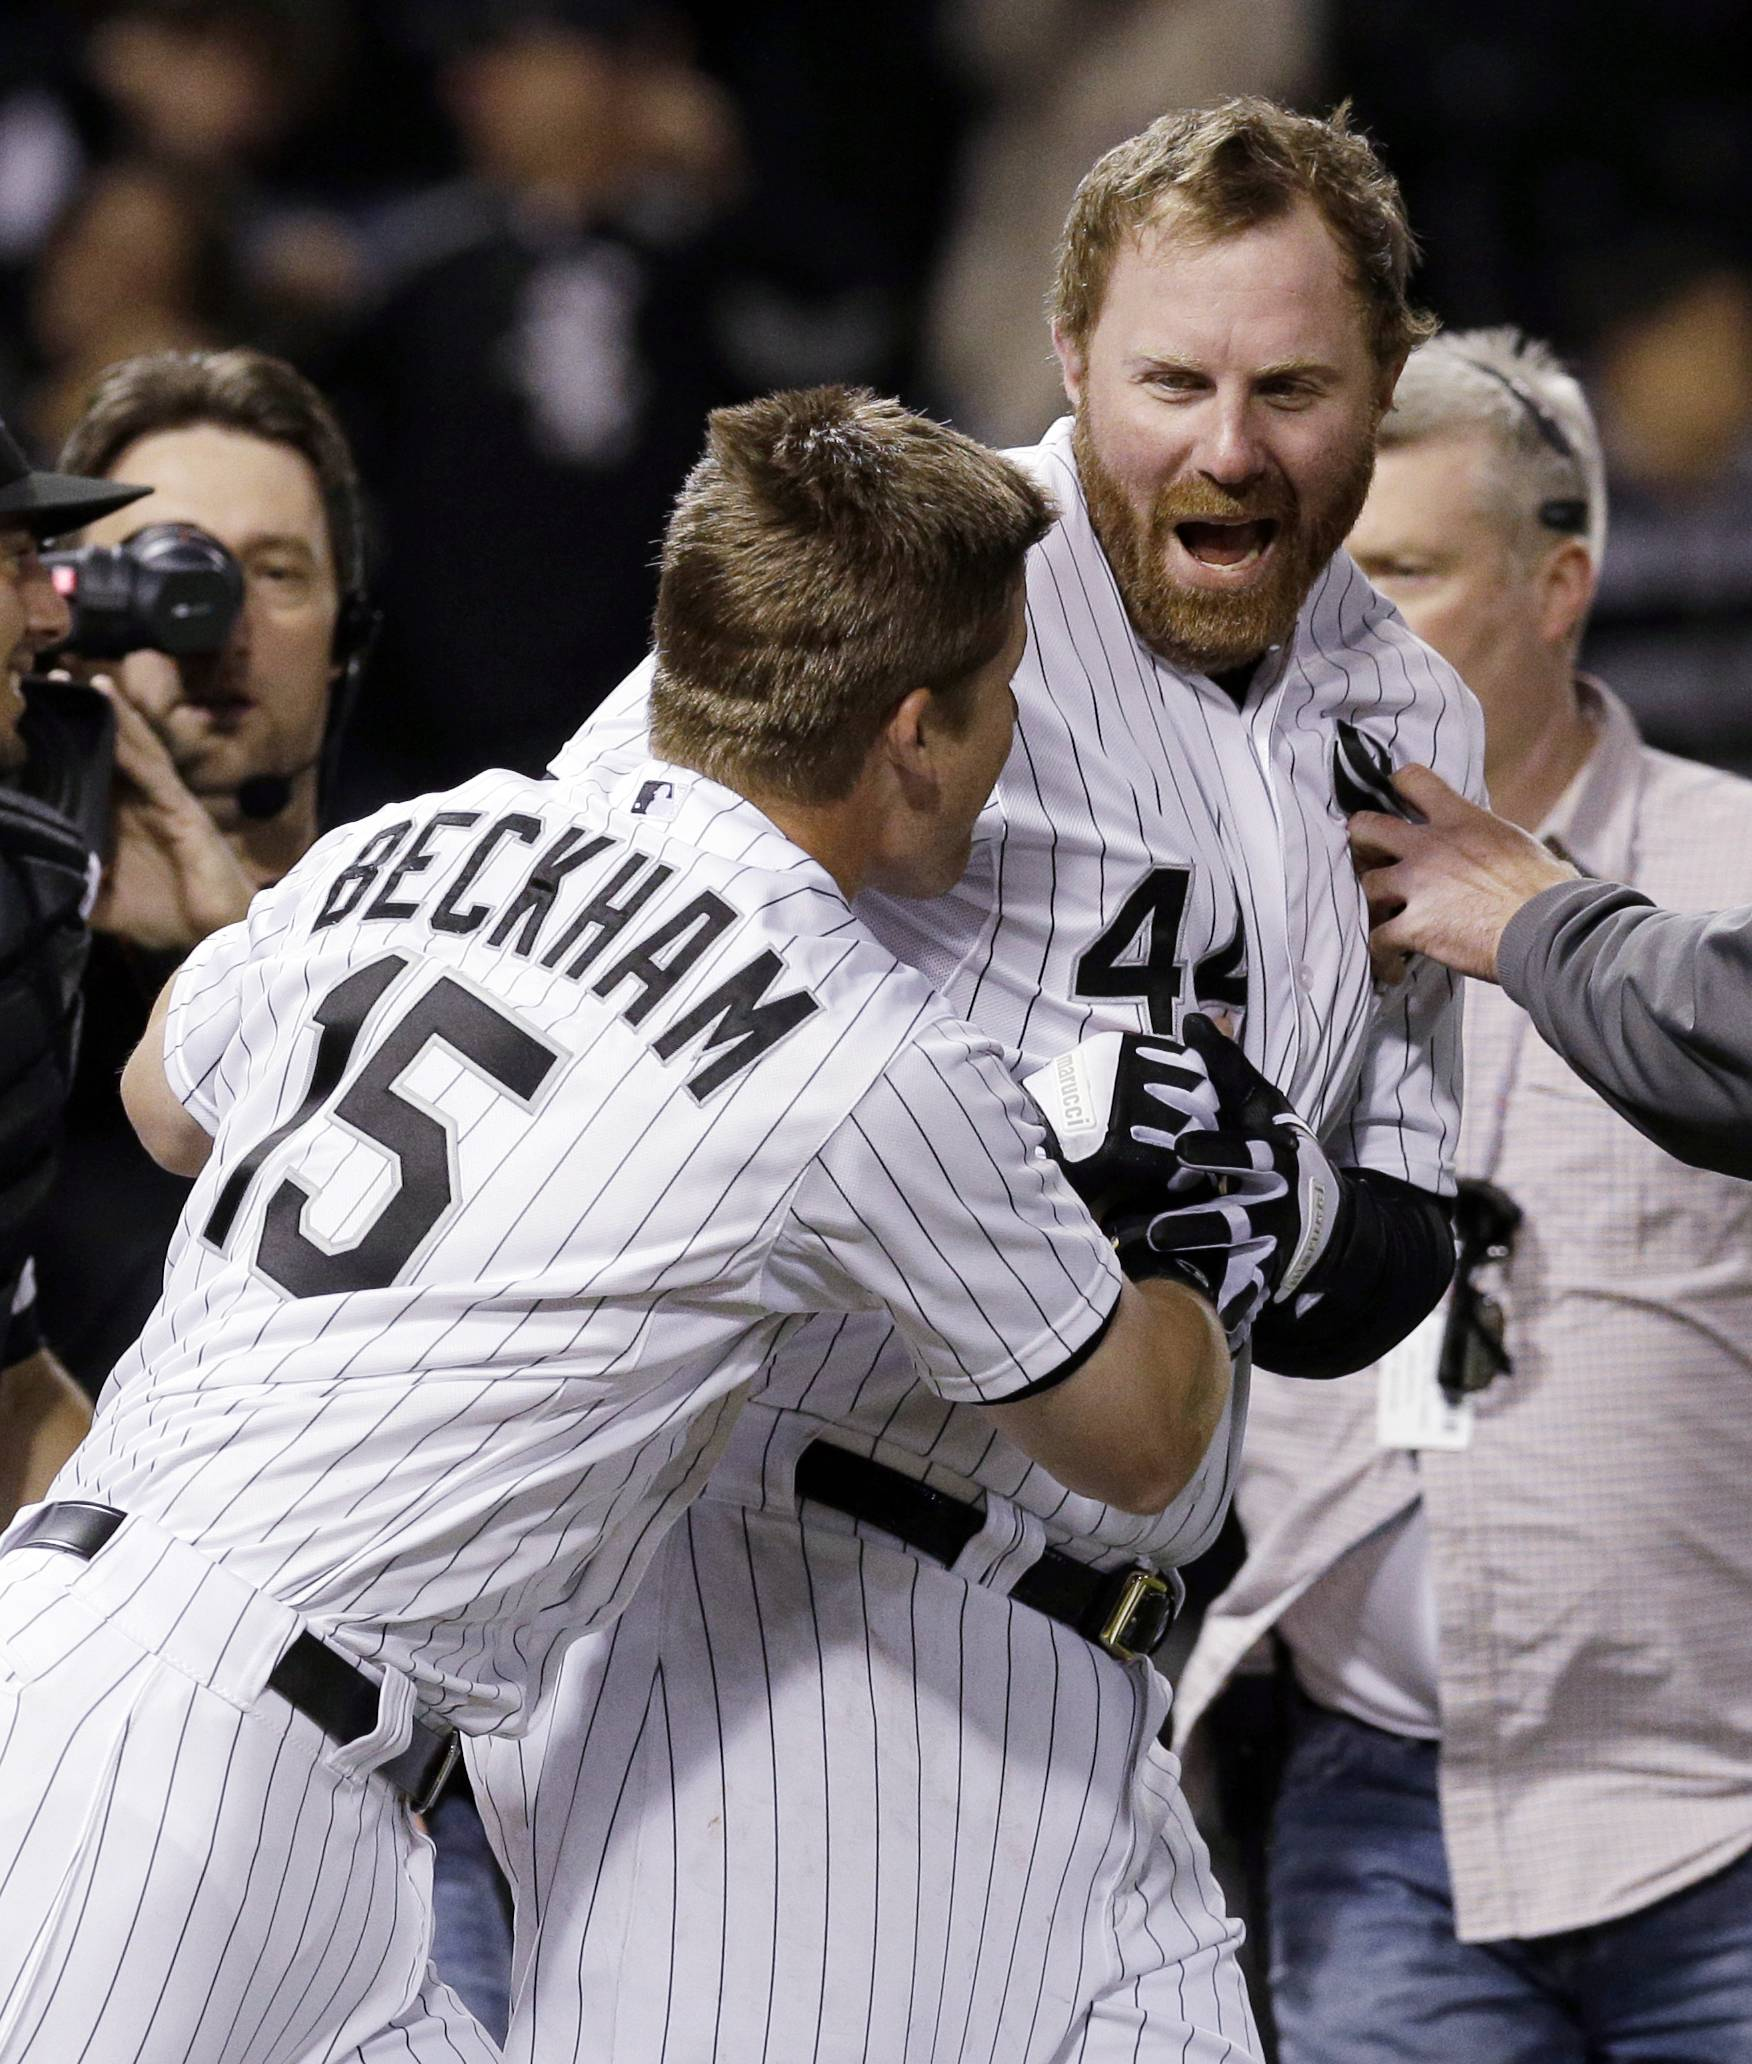 Adam Dunn, right, celebrates with Gordon Beckham after hitting the game-winning two-run home run against the New York Yankees during the ninth inning of a baseball game in Chicago on Friday, May 23, 2014. The White Sox won 6-5. (AP Photo/Nam Y. Huh)